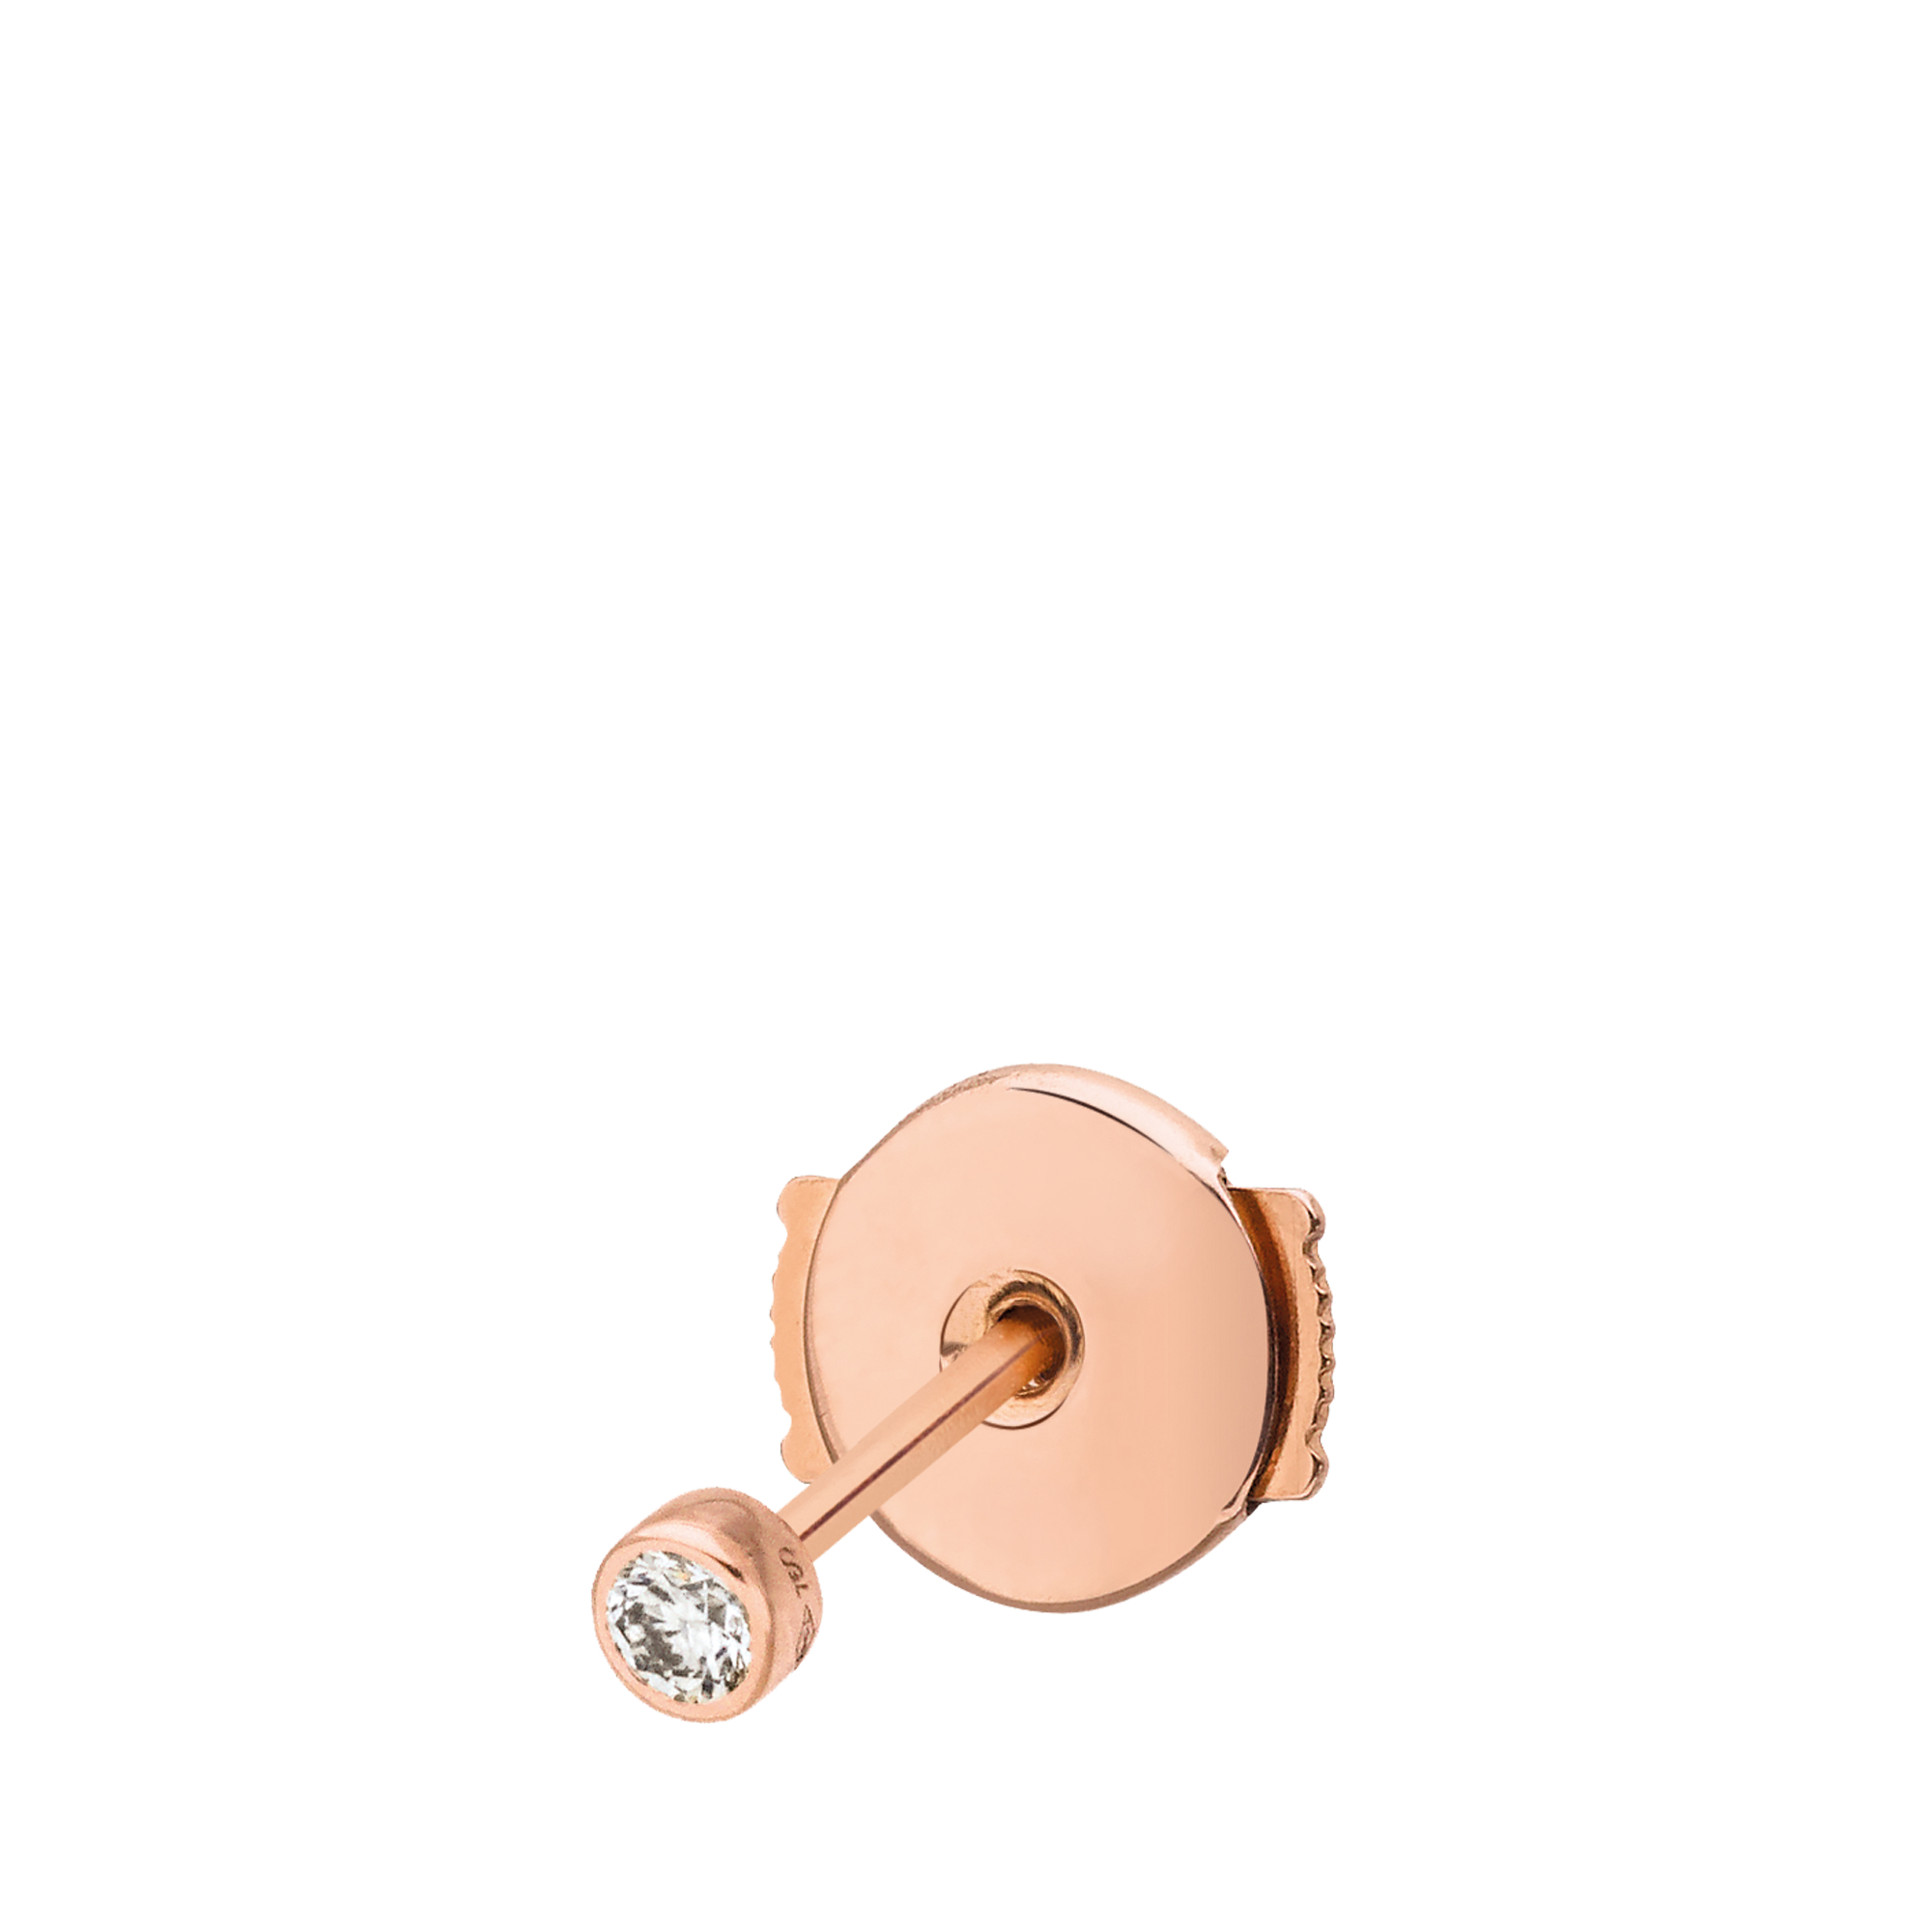 Vanrycke Exclusive - Mono earring Im In Love 750 gold and diamonds